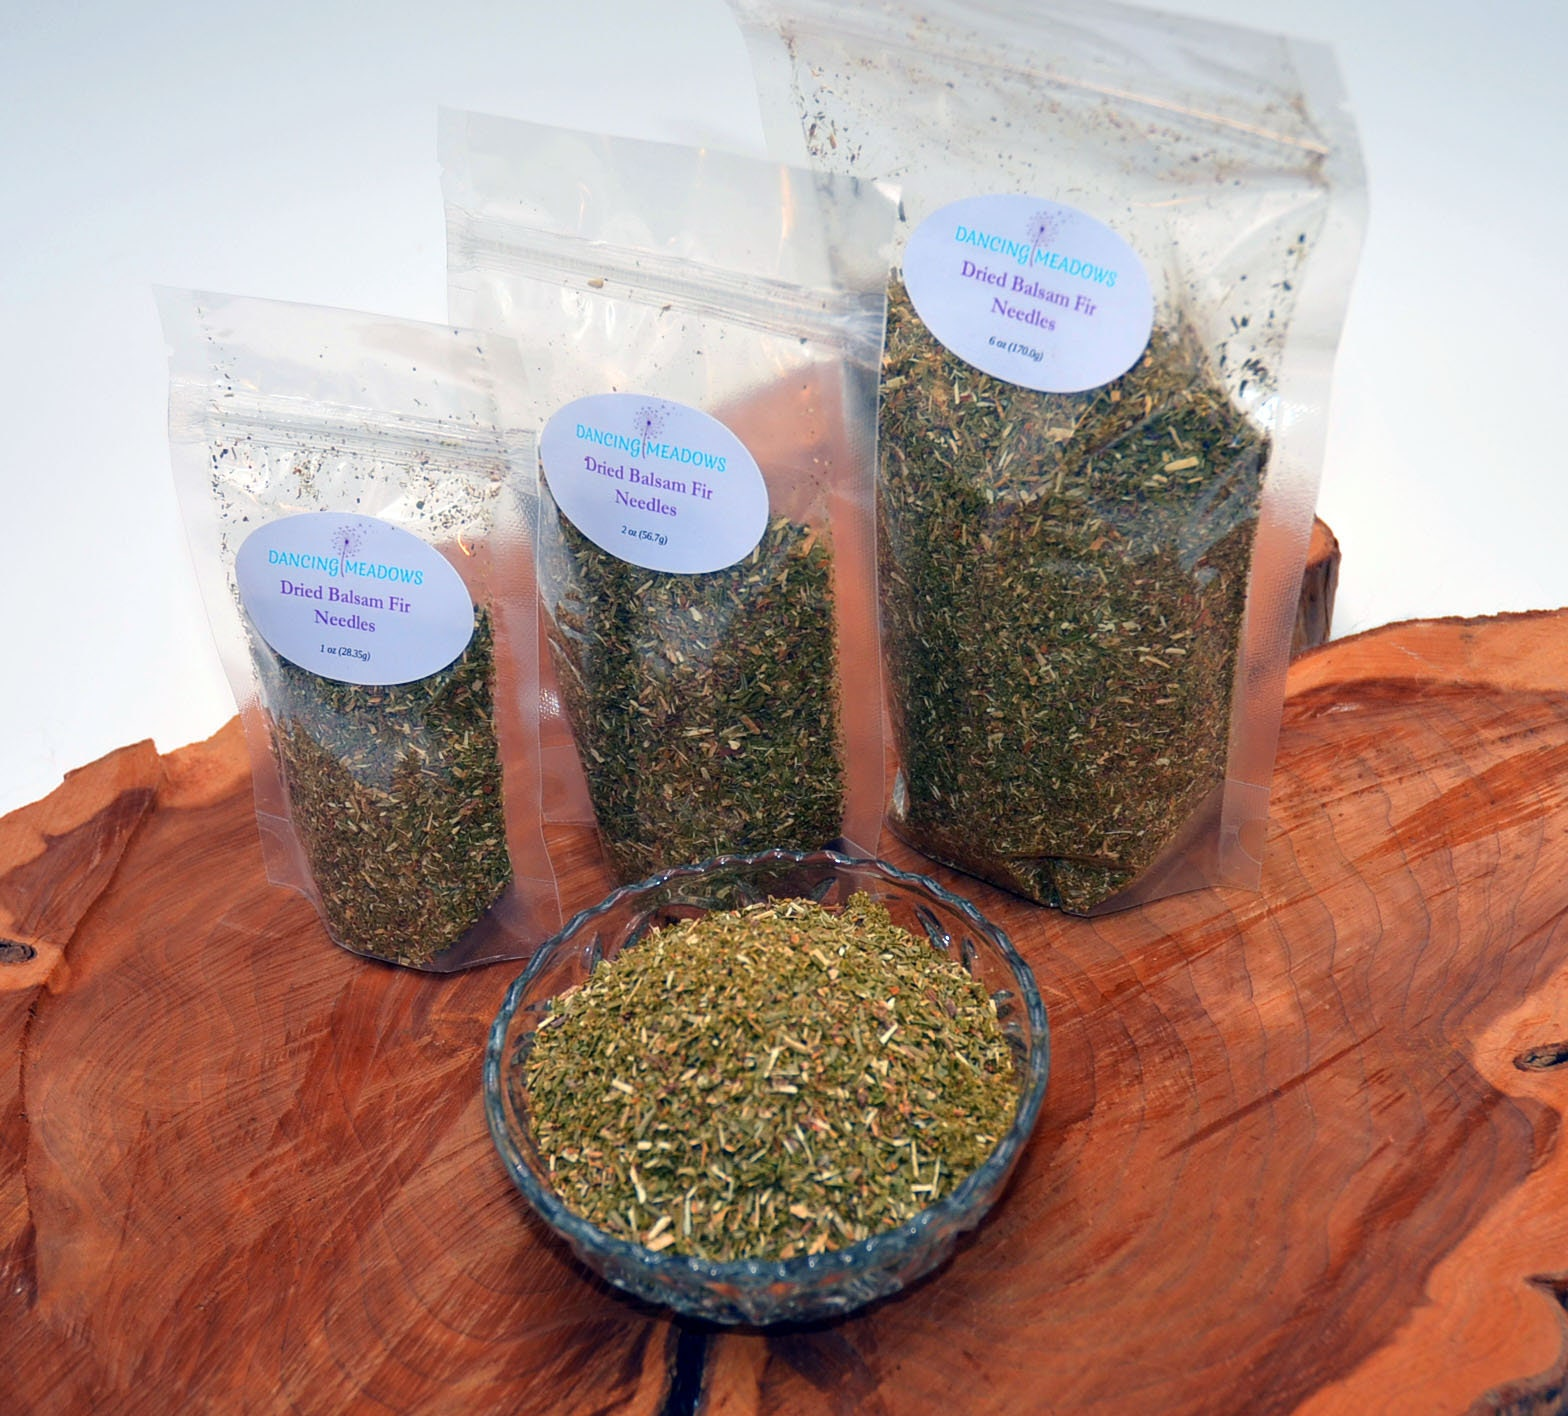 abd82cfbe7836 Dried Balsam Fir Ground Needles 6 oz, available in any size, great ...